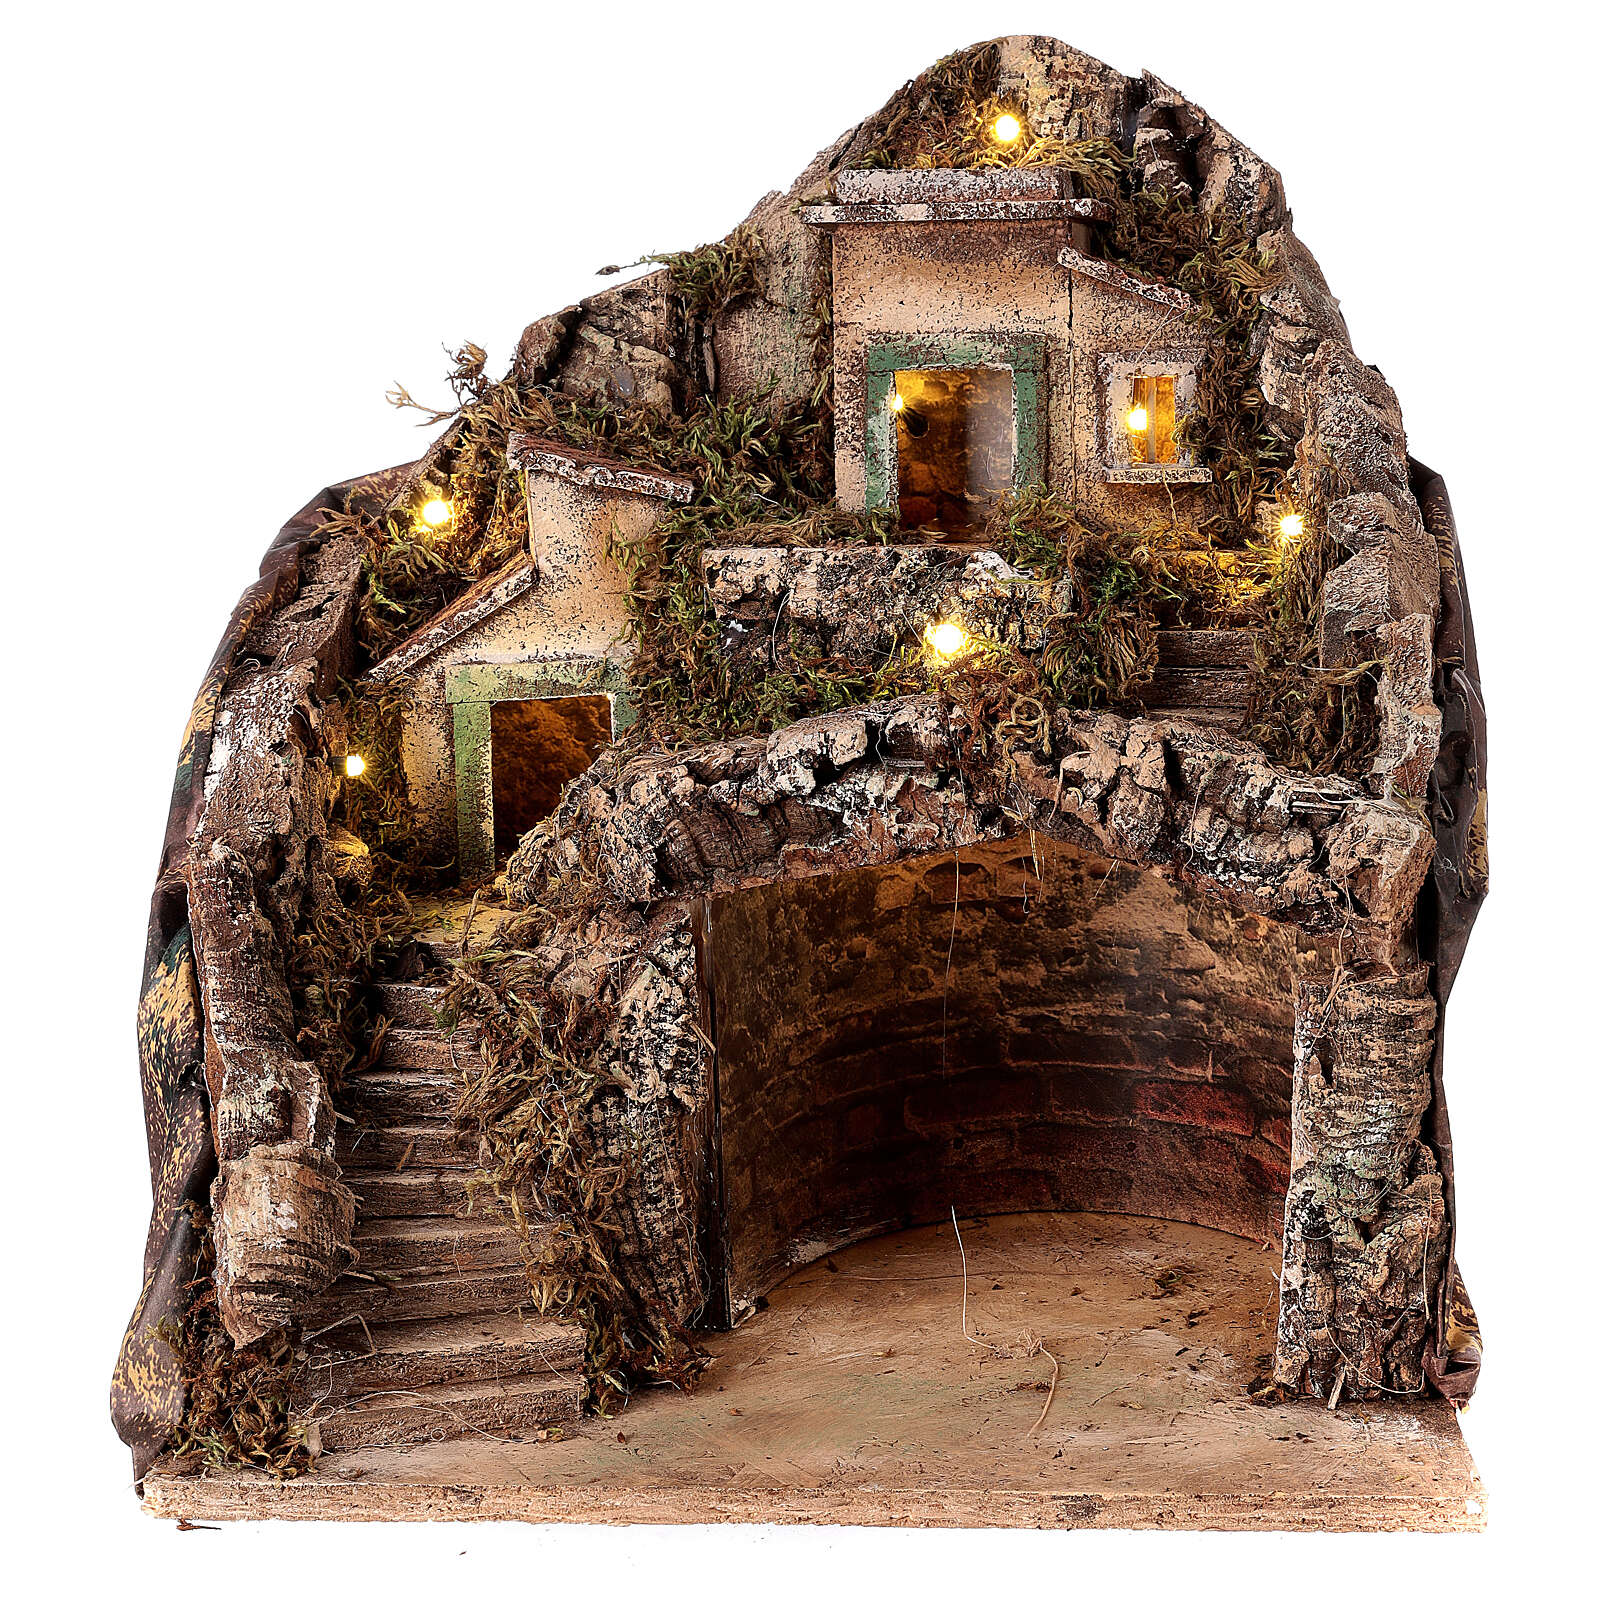 Village, houses, mountain, cave for Neapolitan Nativity scene 30x35x35 for statues 6 cm 4